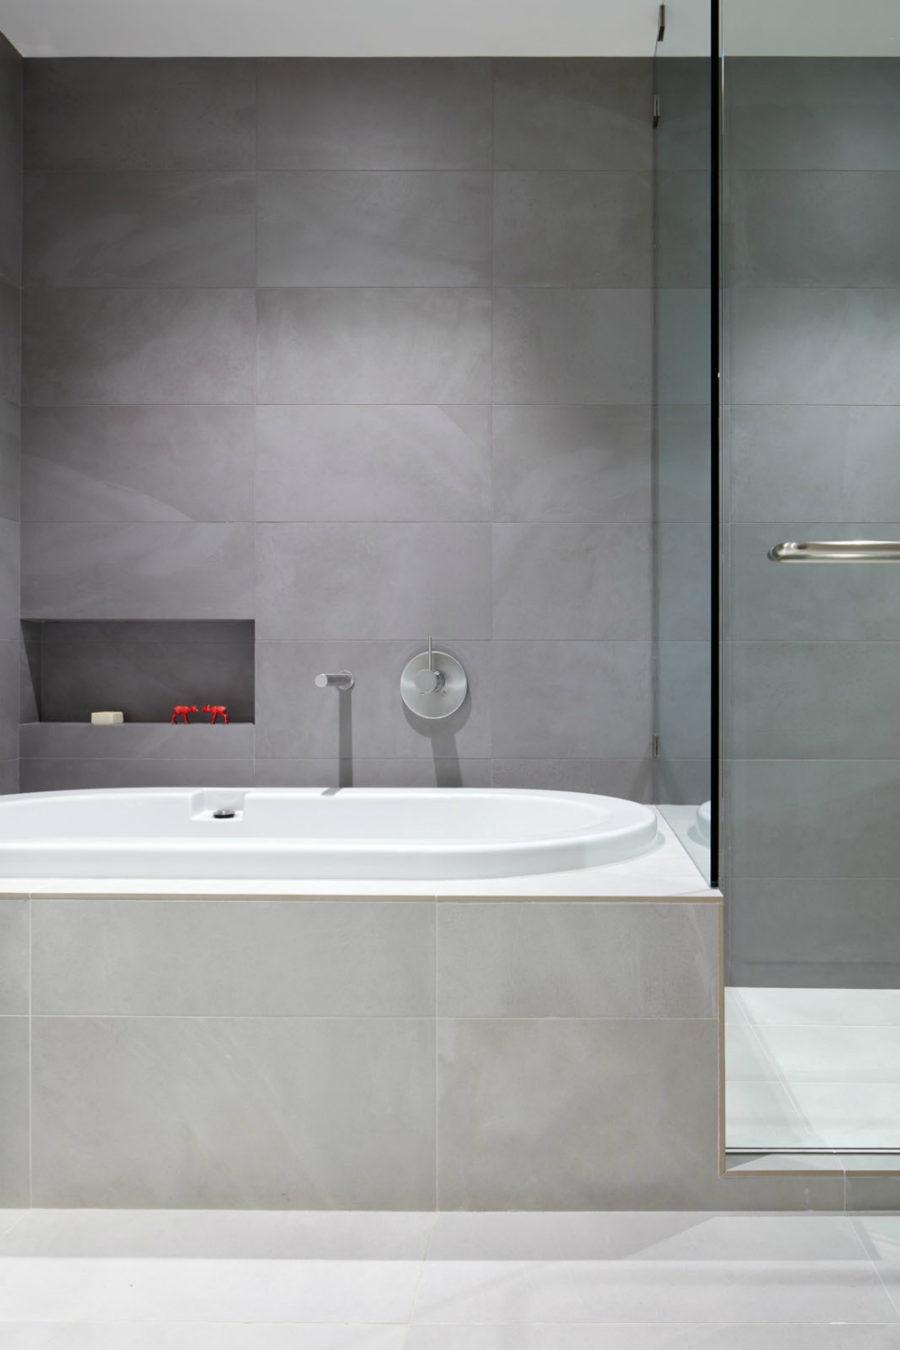 Modern minimalist bathroom features a bathtub and a glass shower stall